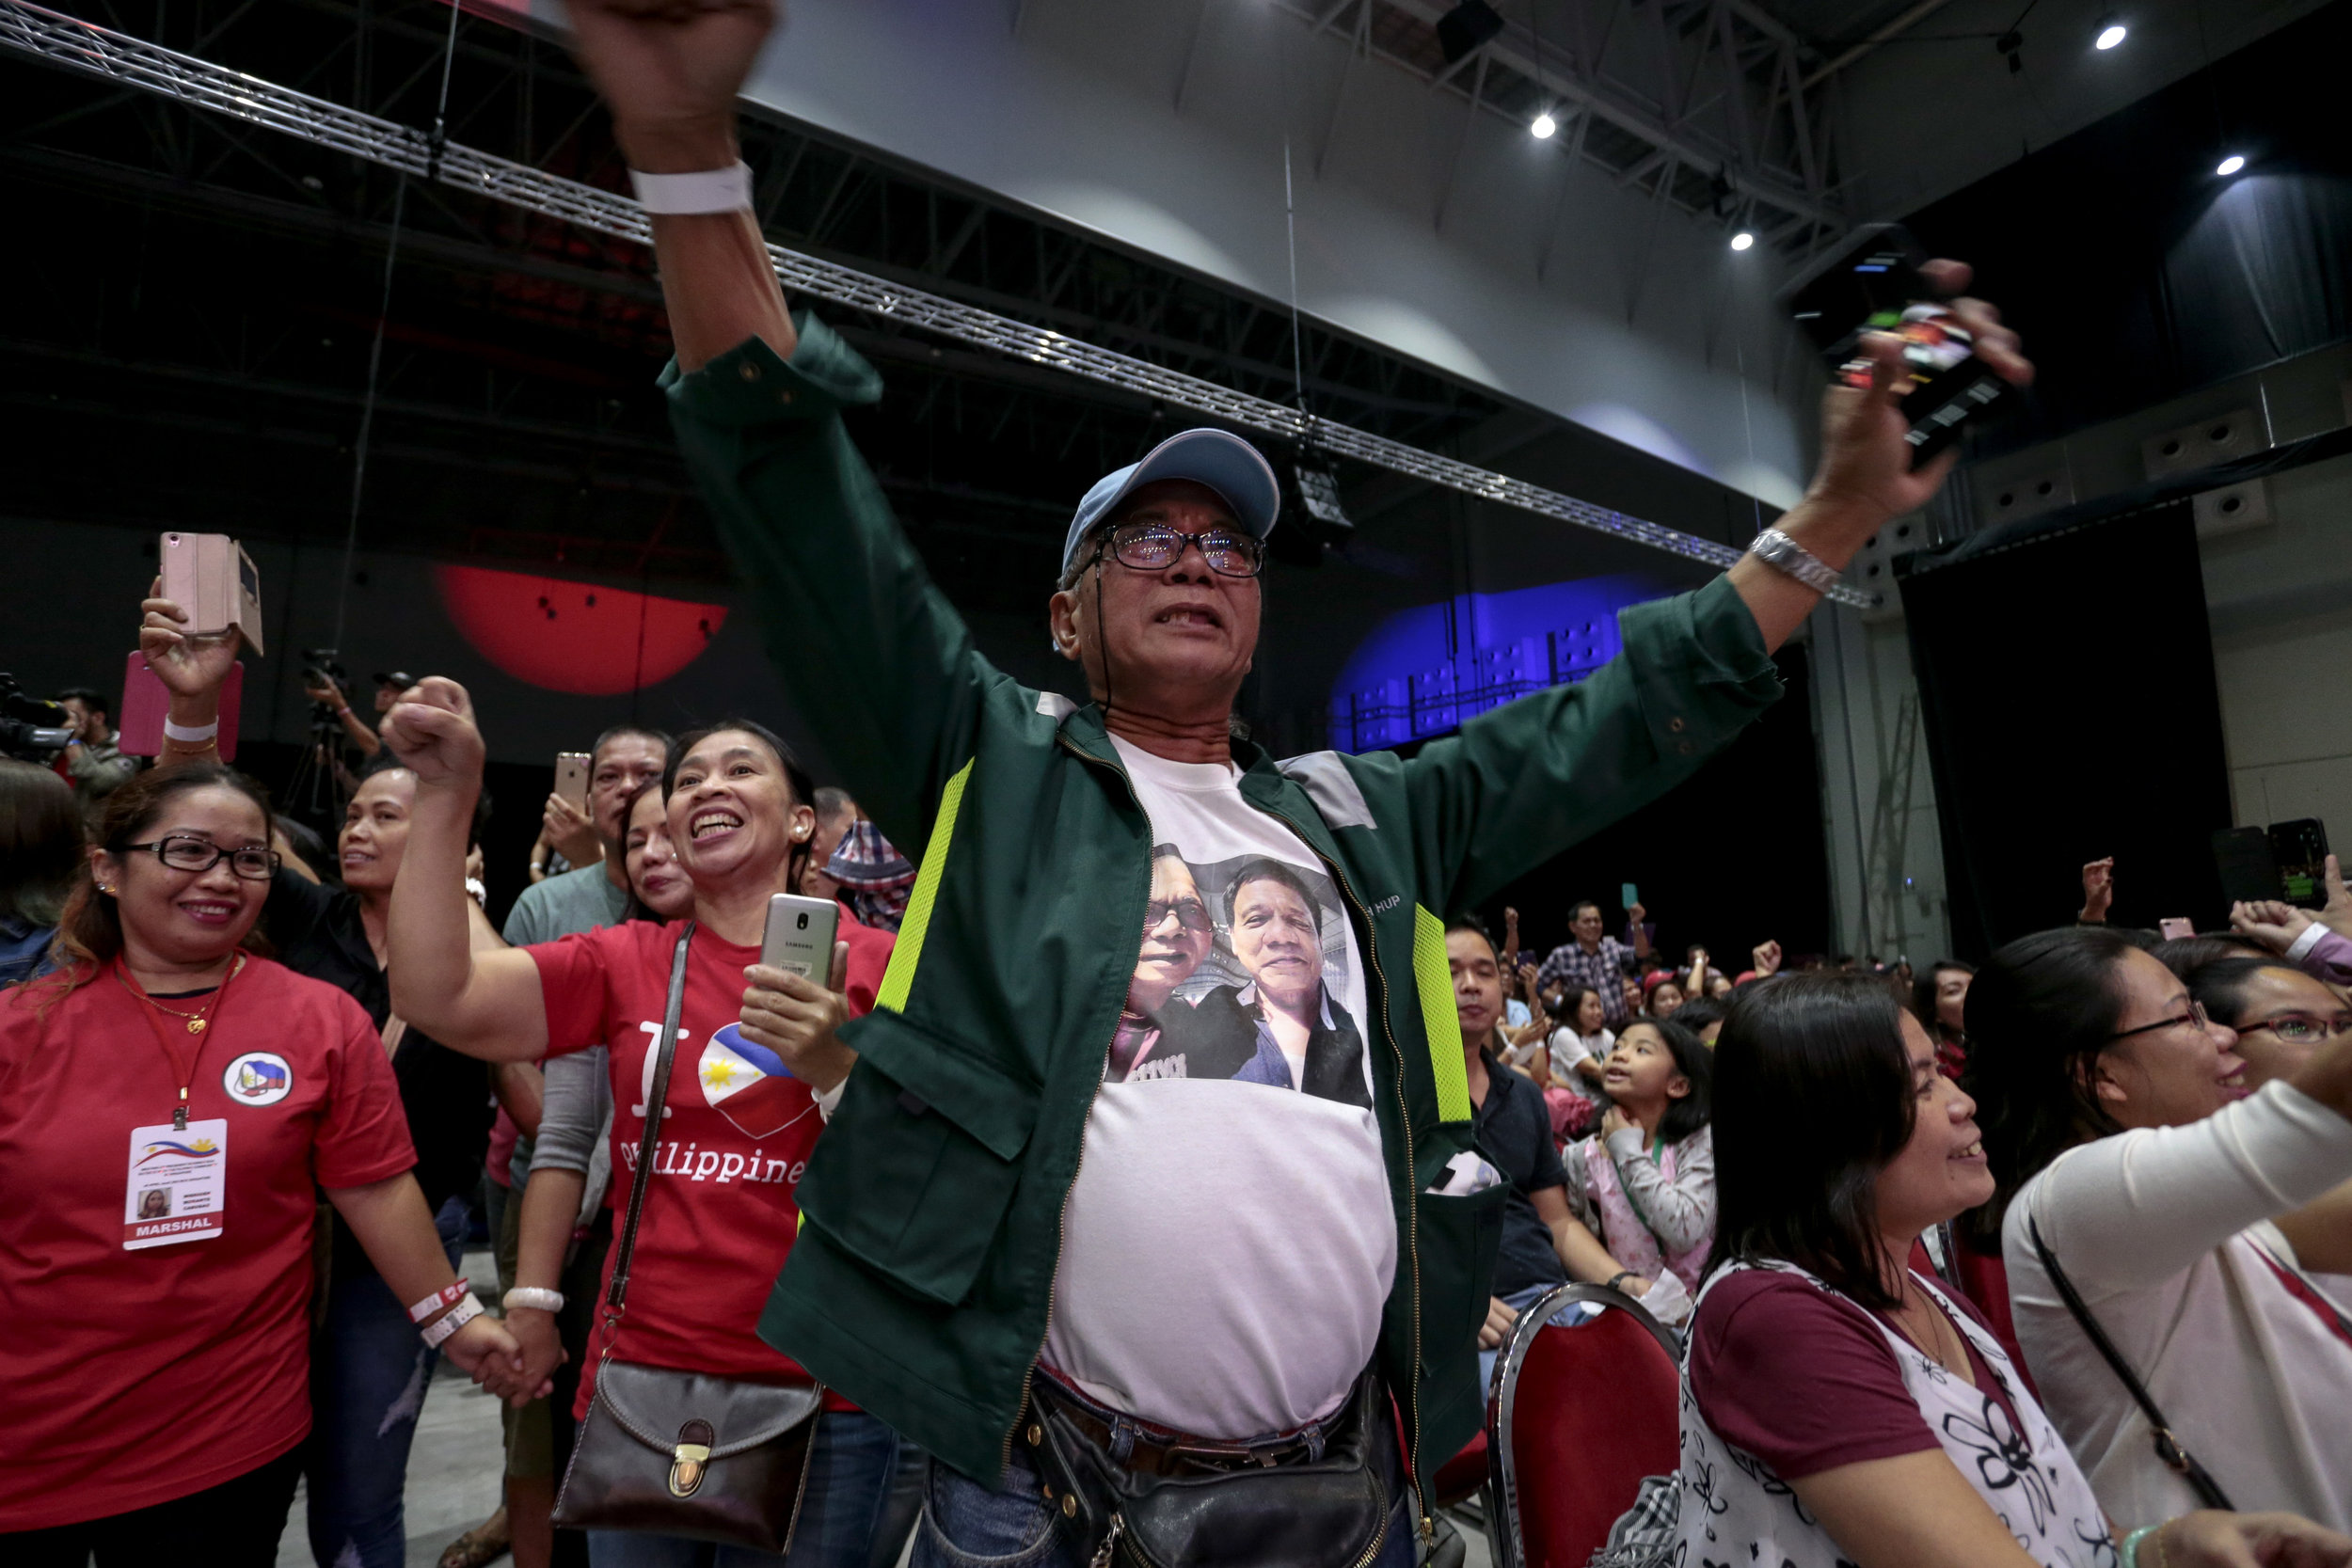 A supporter cheers for Philippines President Rodrigo Duterte at a community gathering in Singapore, April 28, 2018. REUTERS/Feline Lim